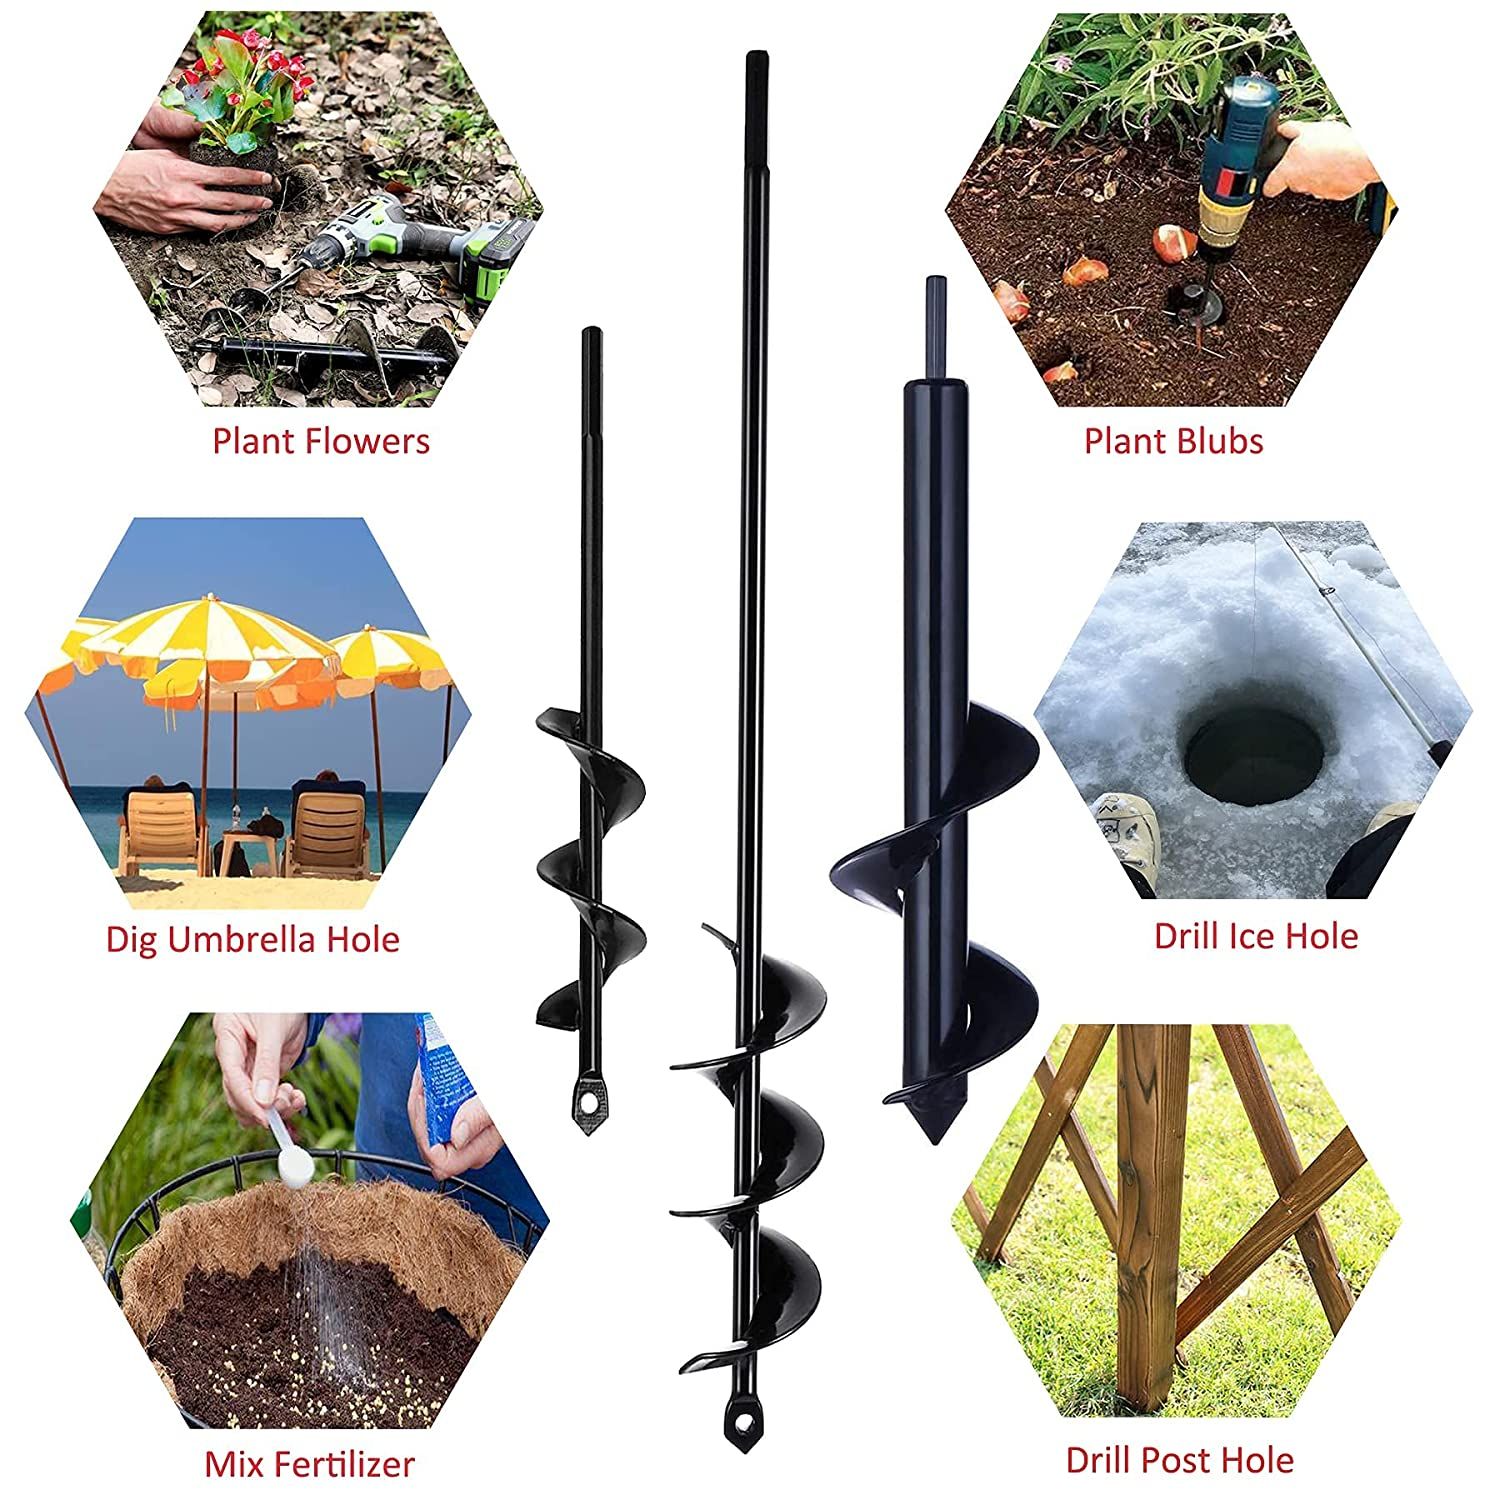 L &1.8 &1.6 D D x14.6 D x10 for Bedding Plants and Digging Weeds ...